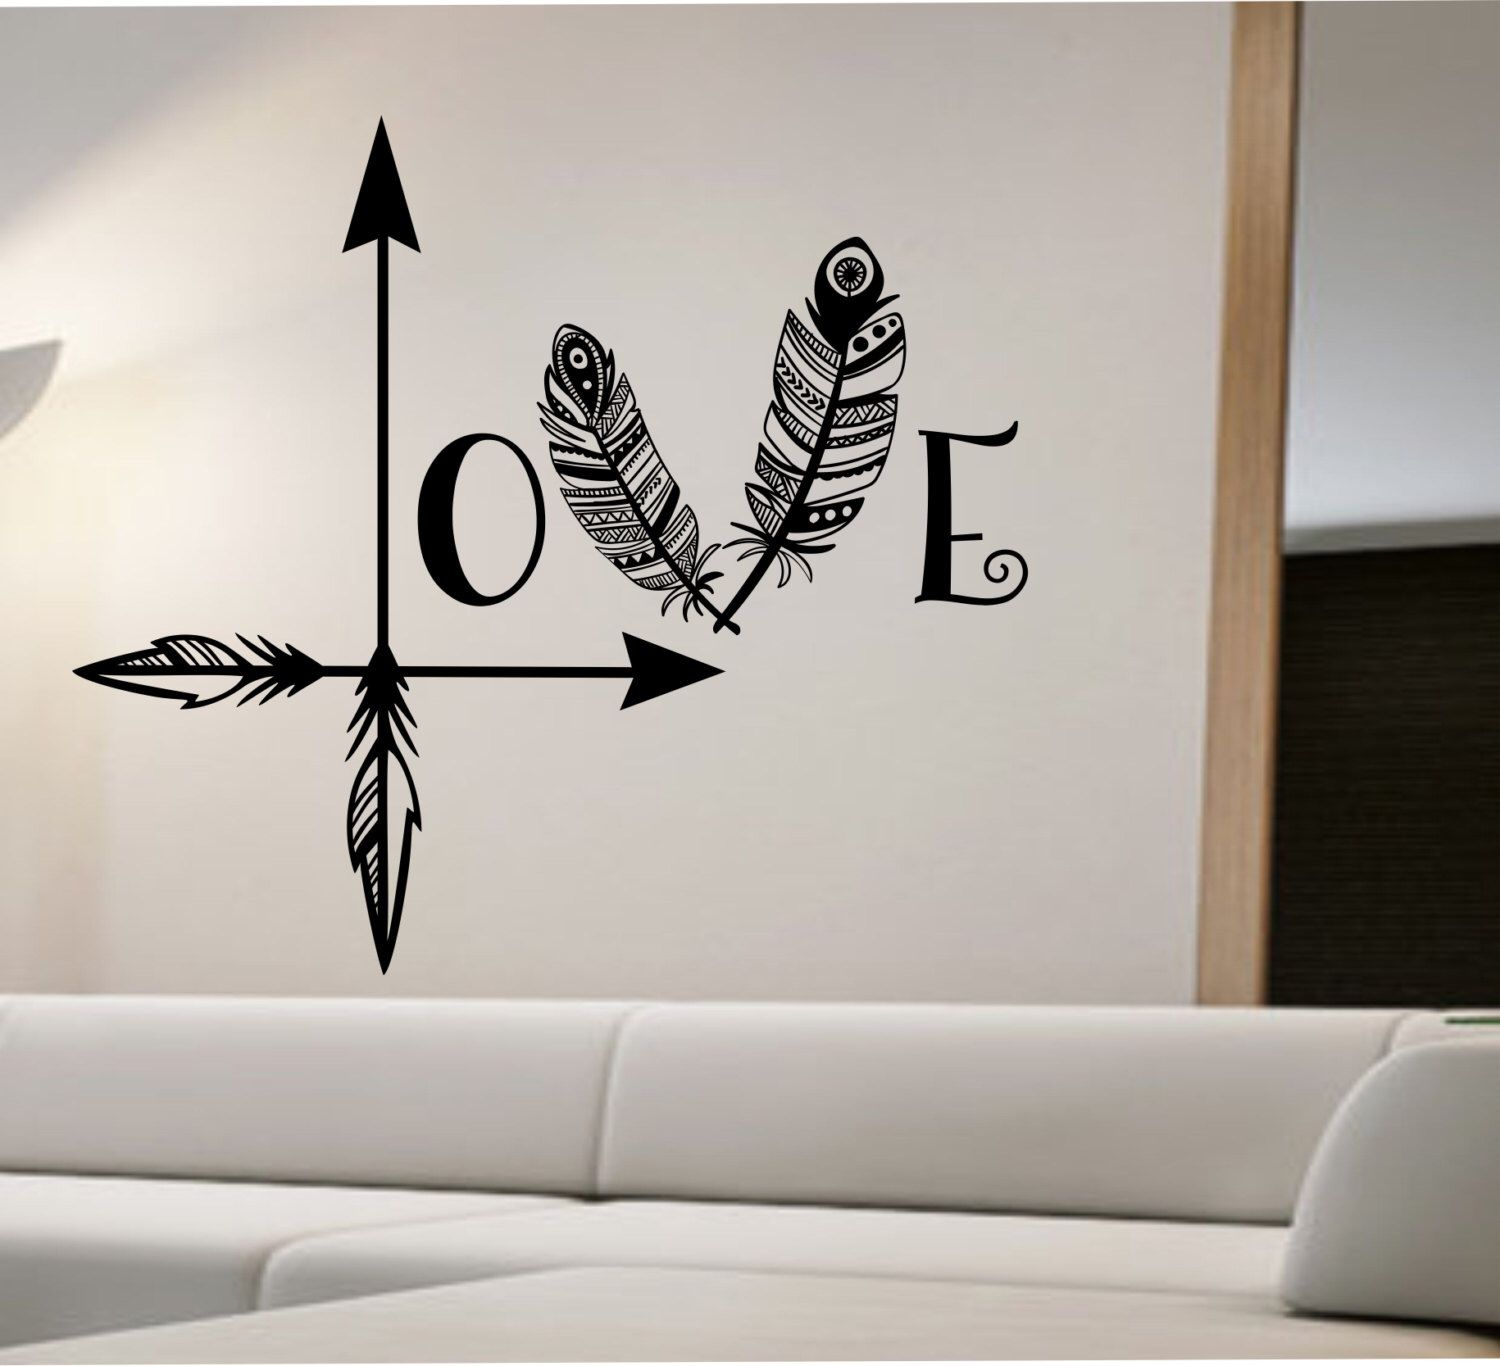 Wall Art Decals For Living Room: Arrow Feather Love Wall Decal Namaste Vinyl Sticker Art